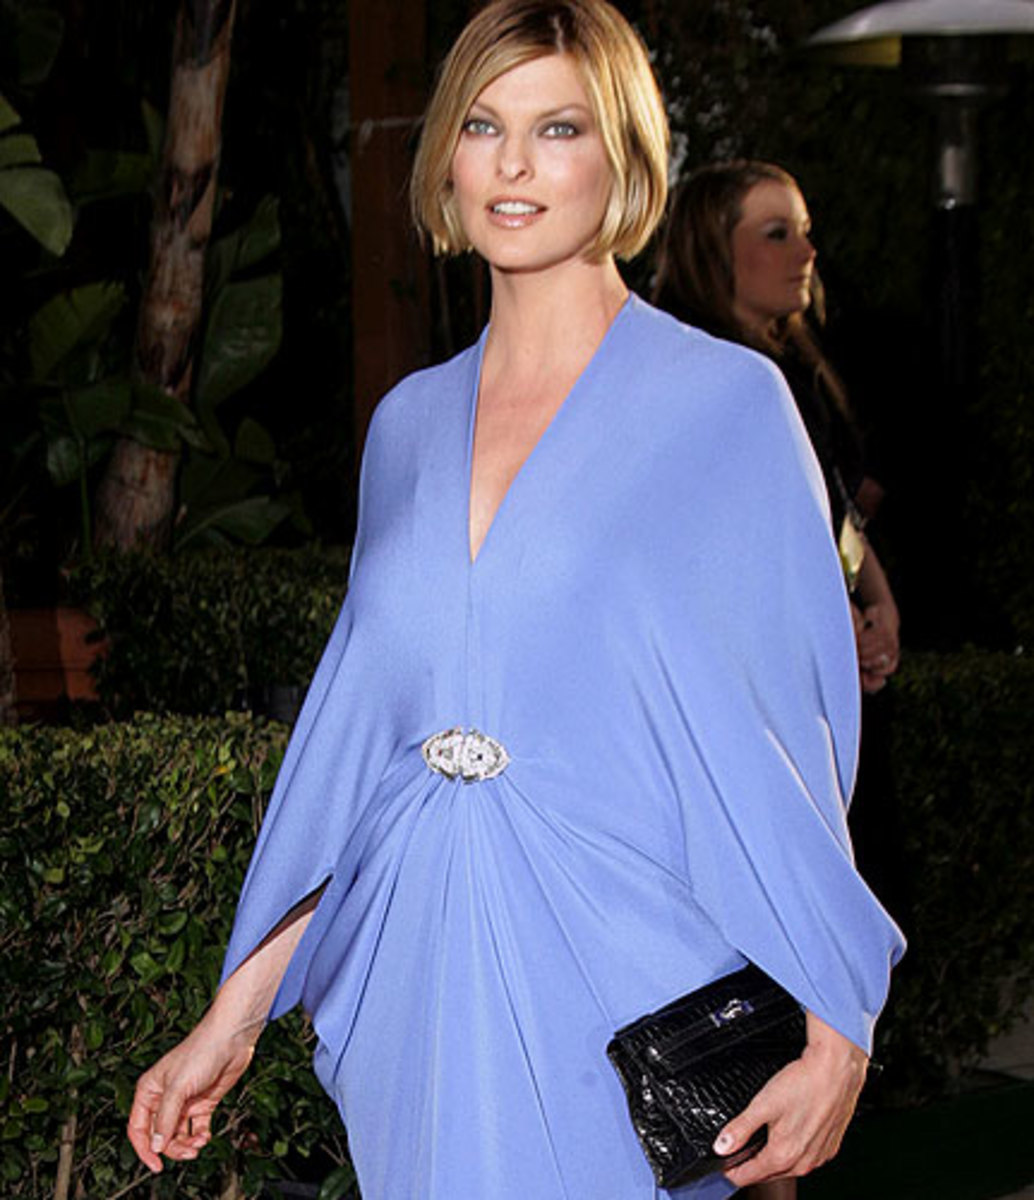 Linda Evangelista's Blonde Short Hair (Photo from virginmedia)